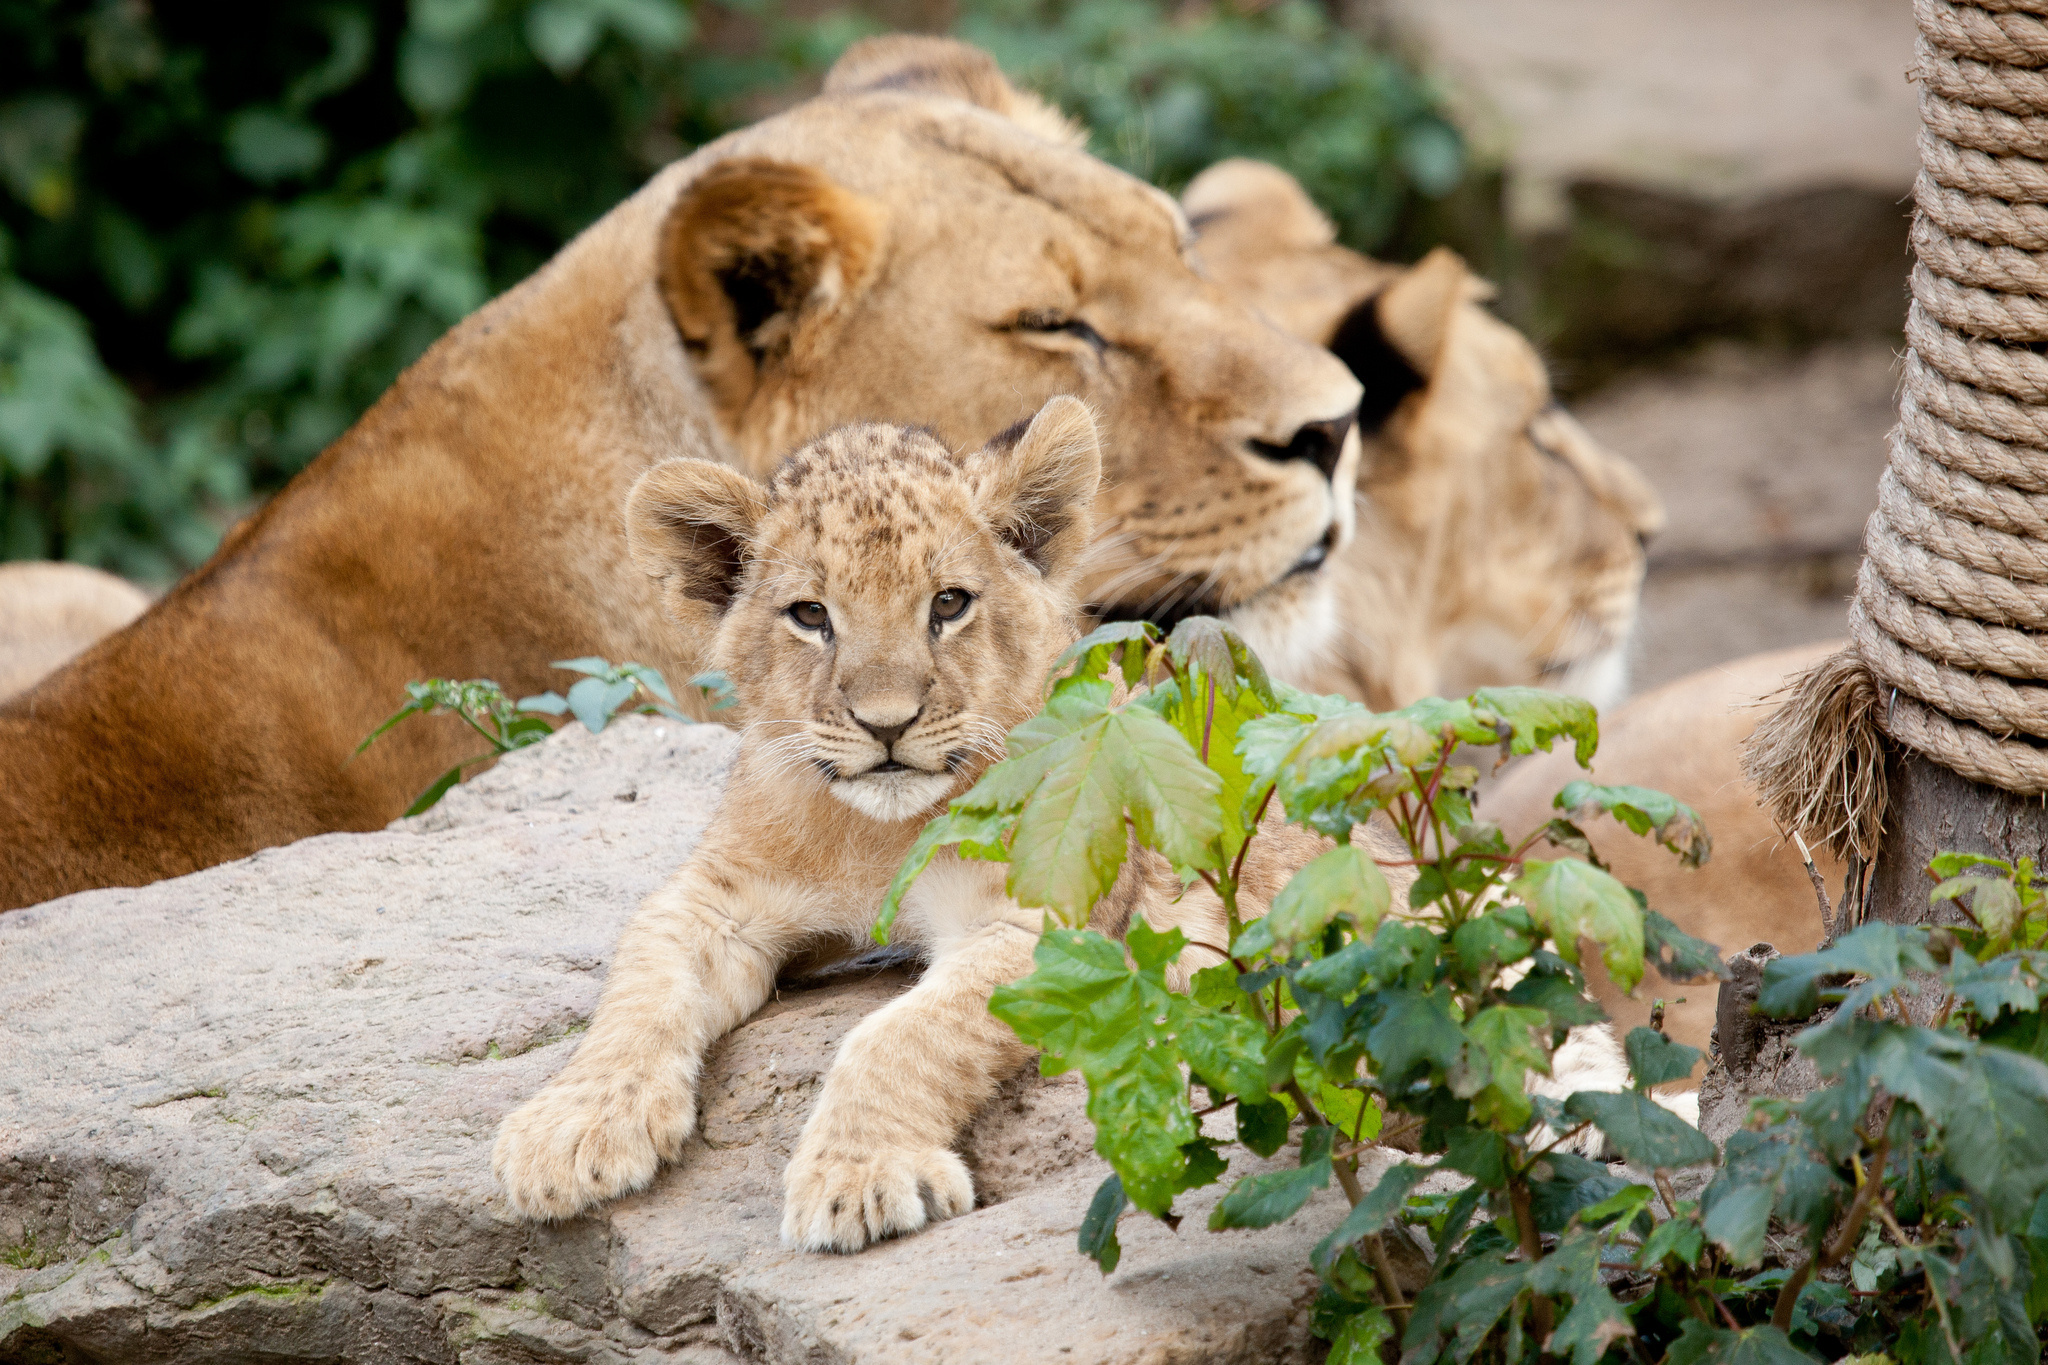 Download mobile wallpaper Lioness, Young, Cubs, Stones, Animals, Leaves for free.